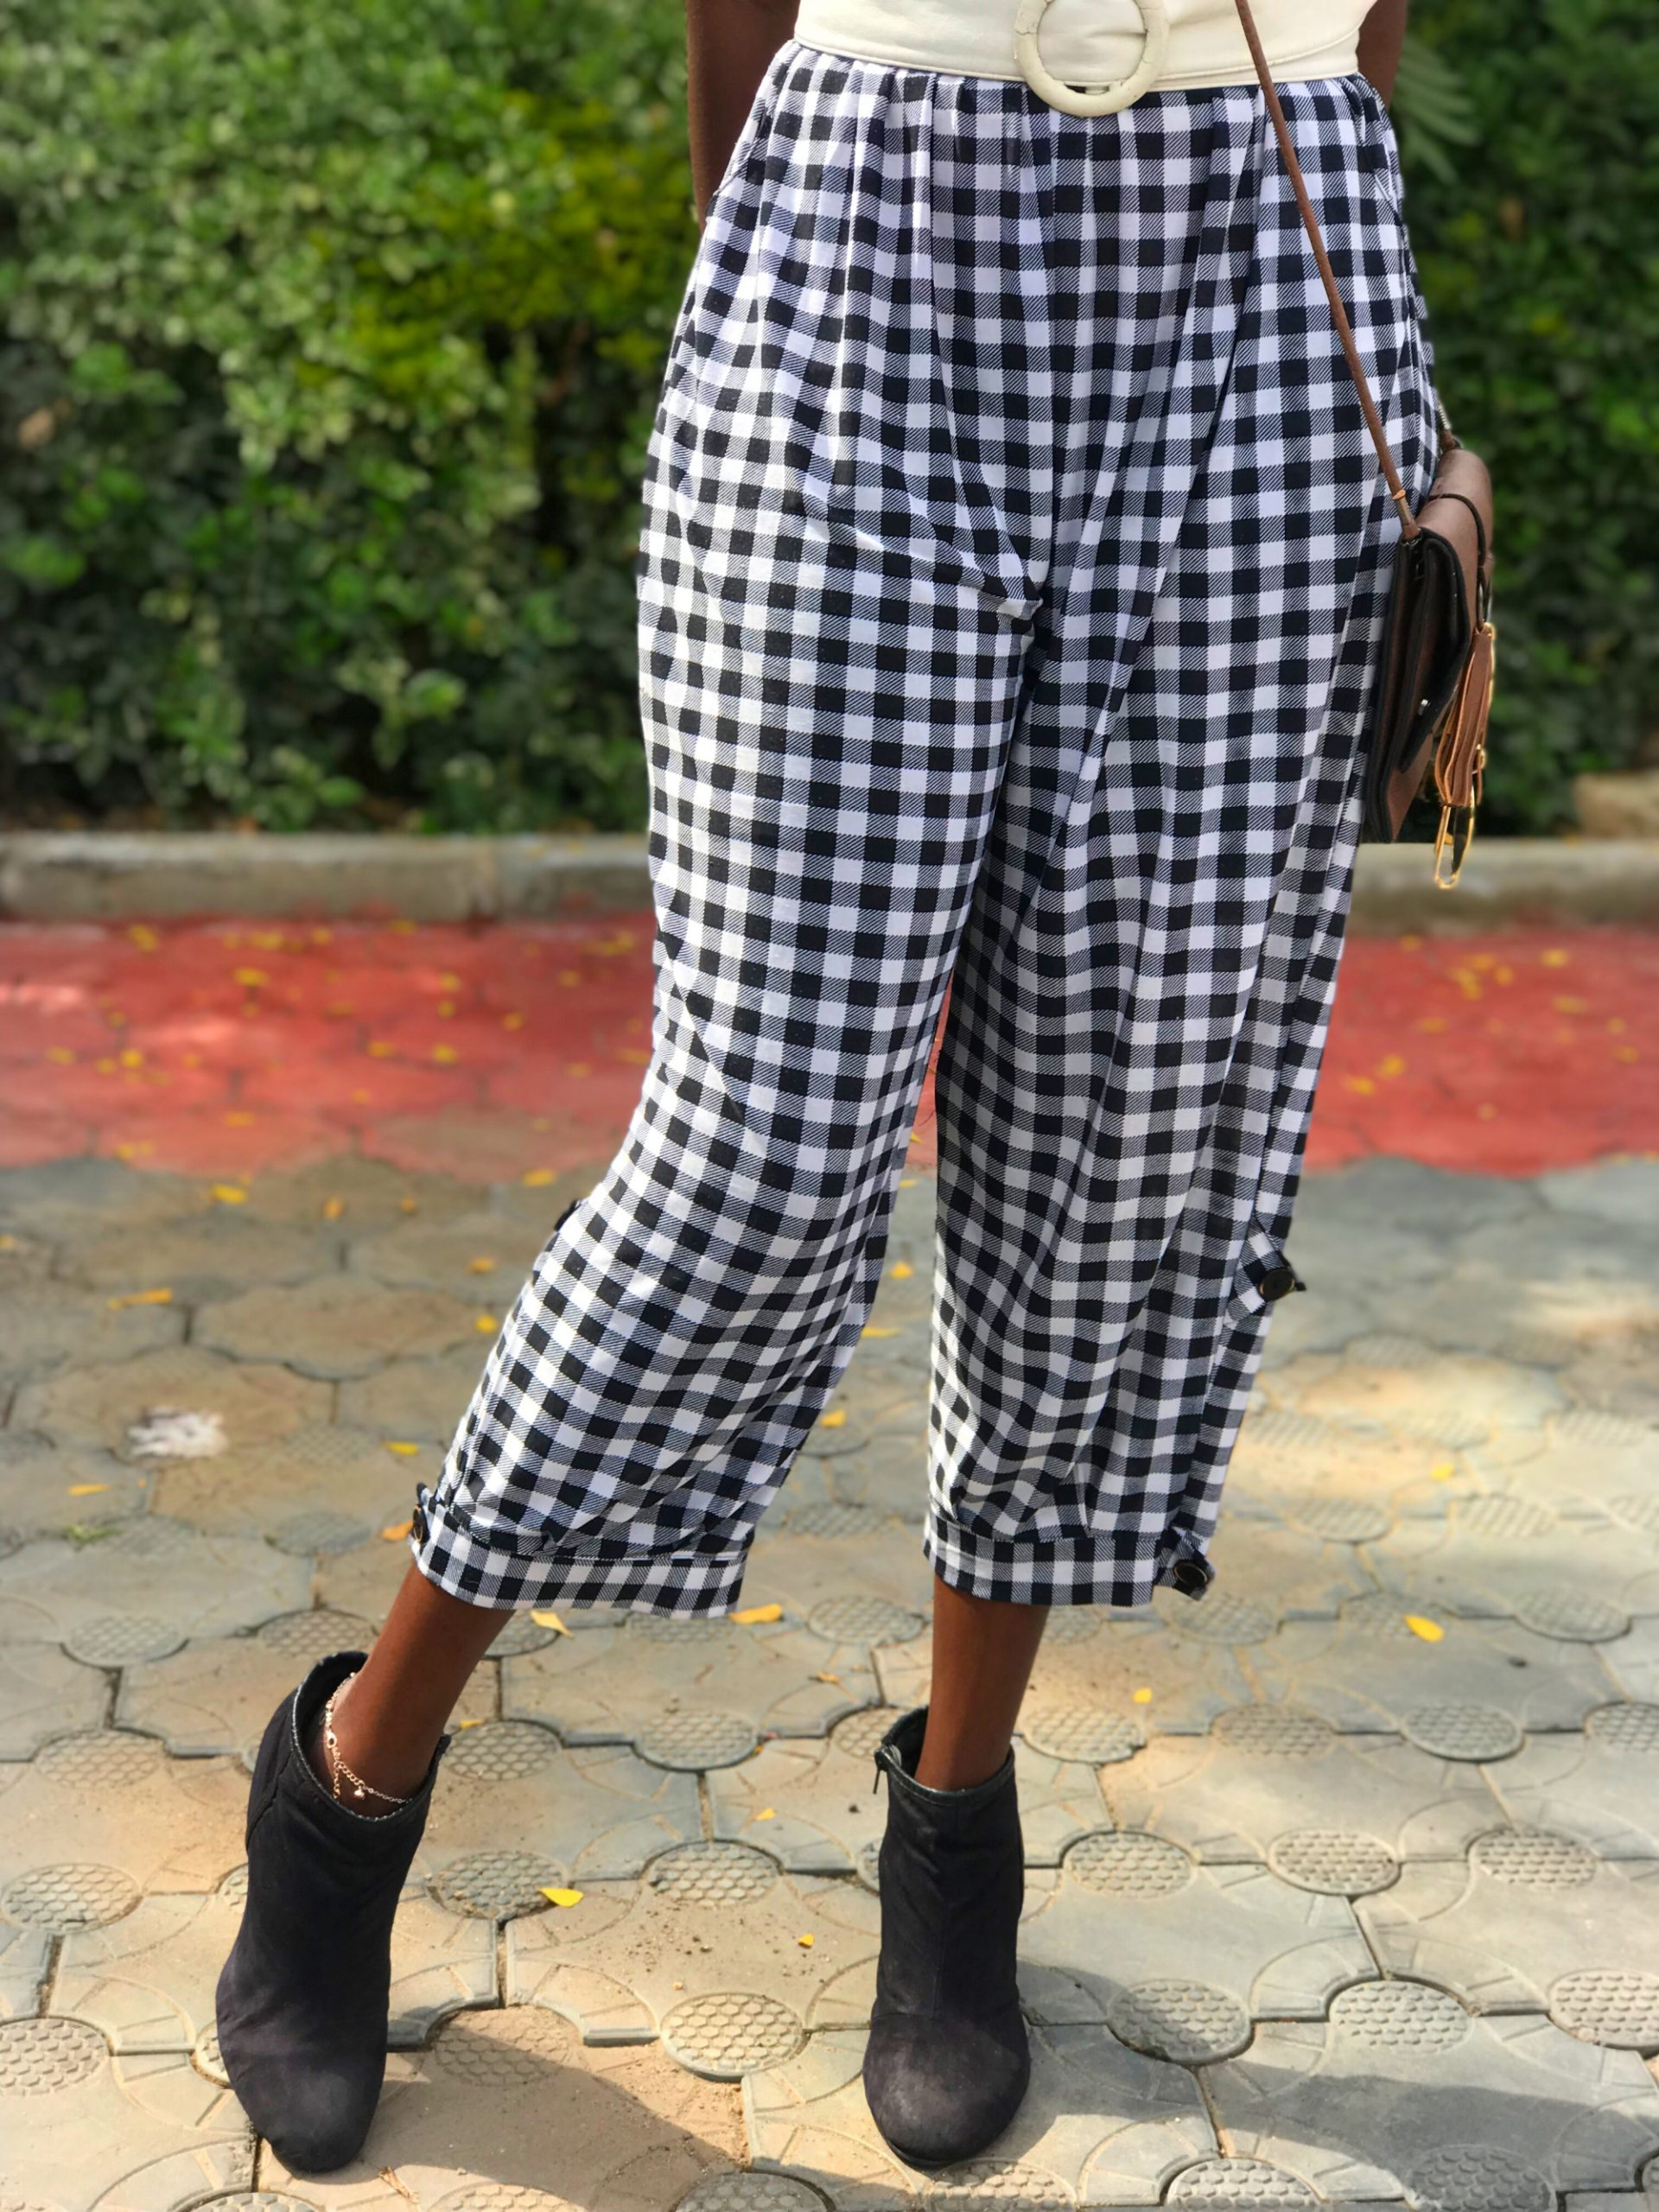 STYLING PLAID PANTS FOR AN EVENT 101